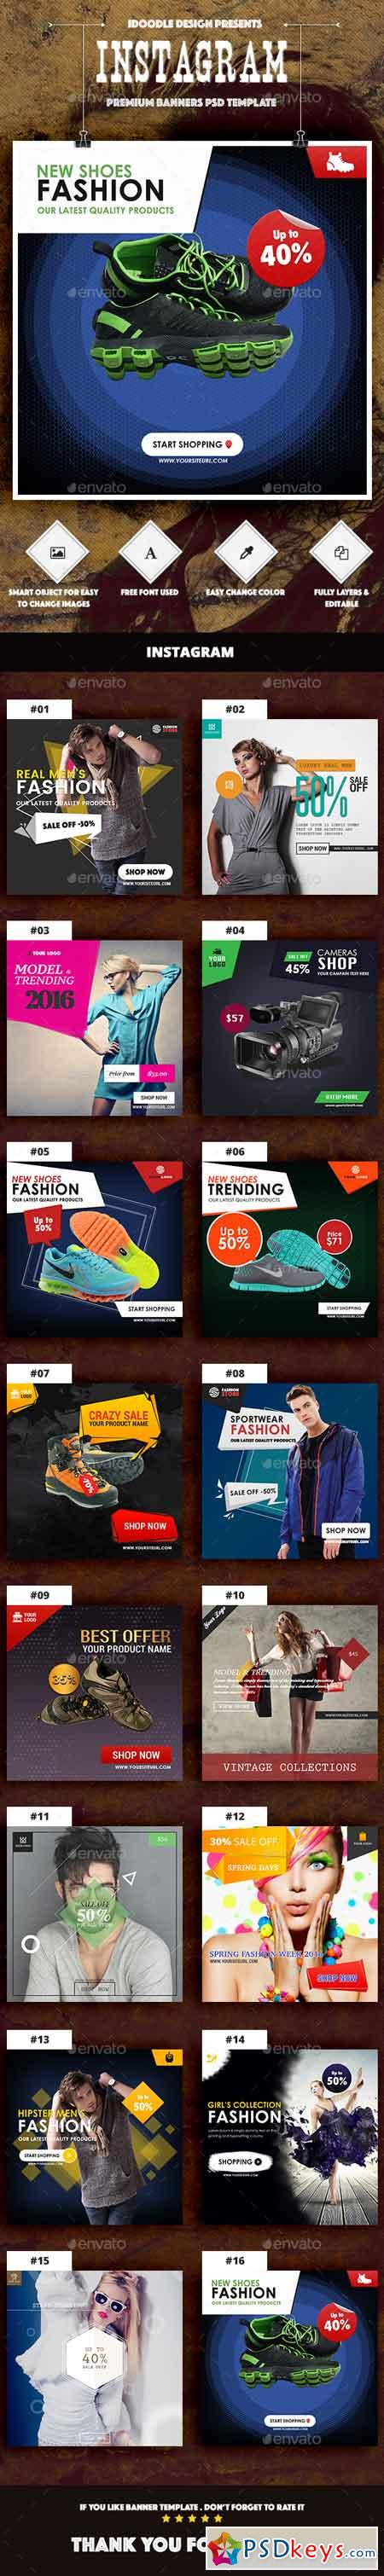 Instagram Product Banners Ads - 16 PSD 14526801